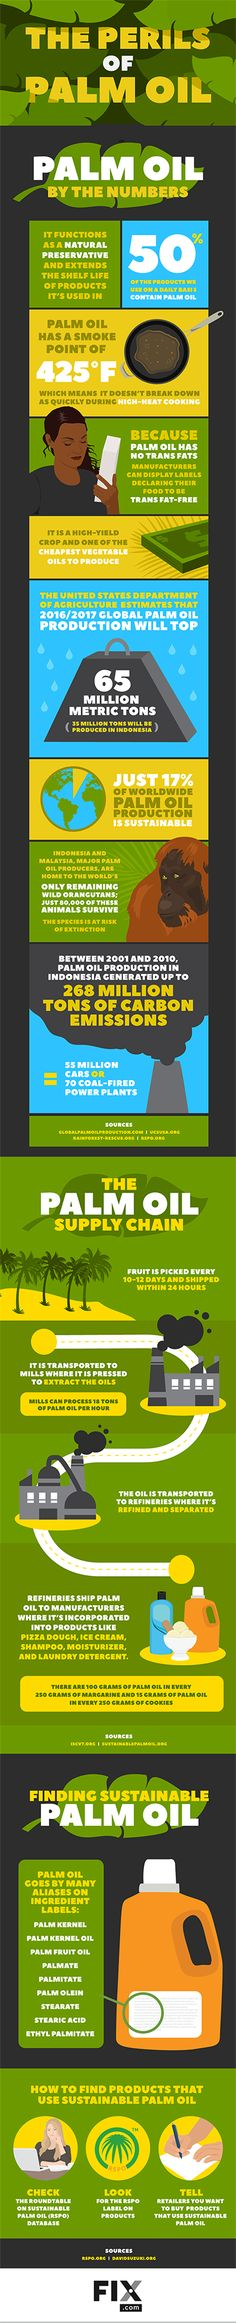 Palm Oil's Negative Effect on the Environment | Fix.com